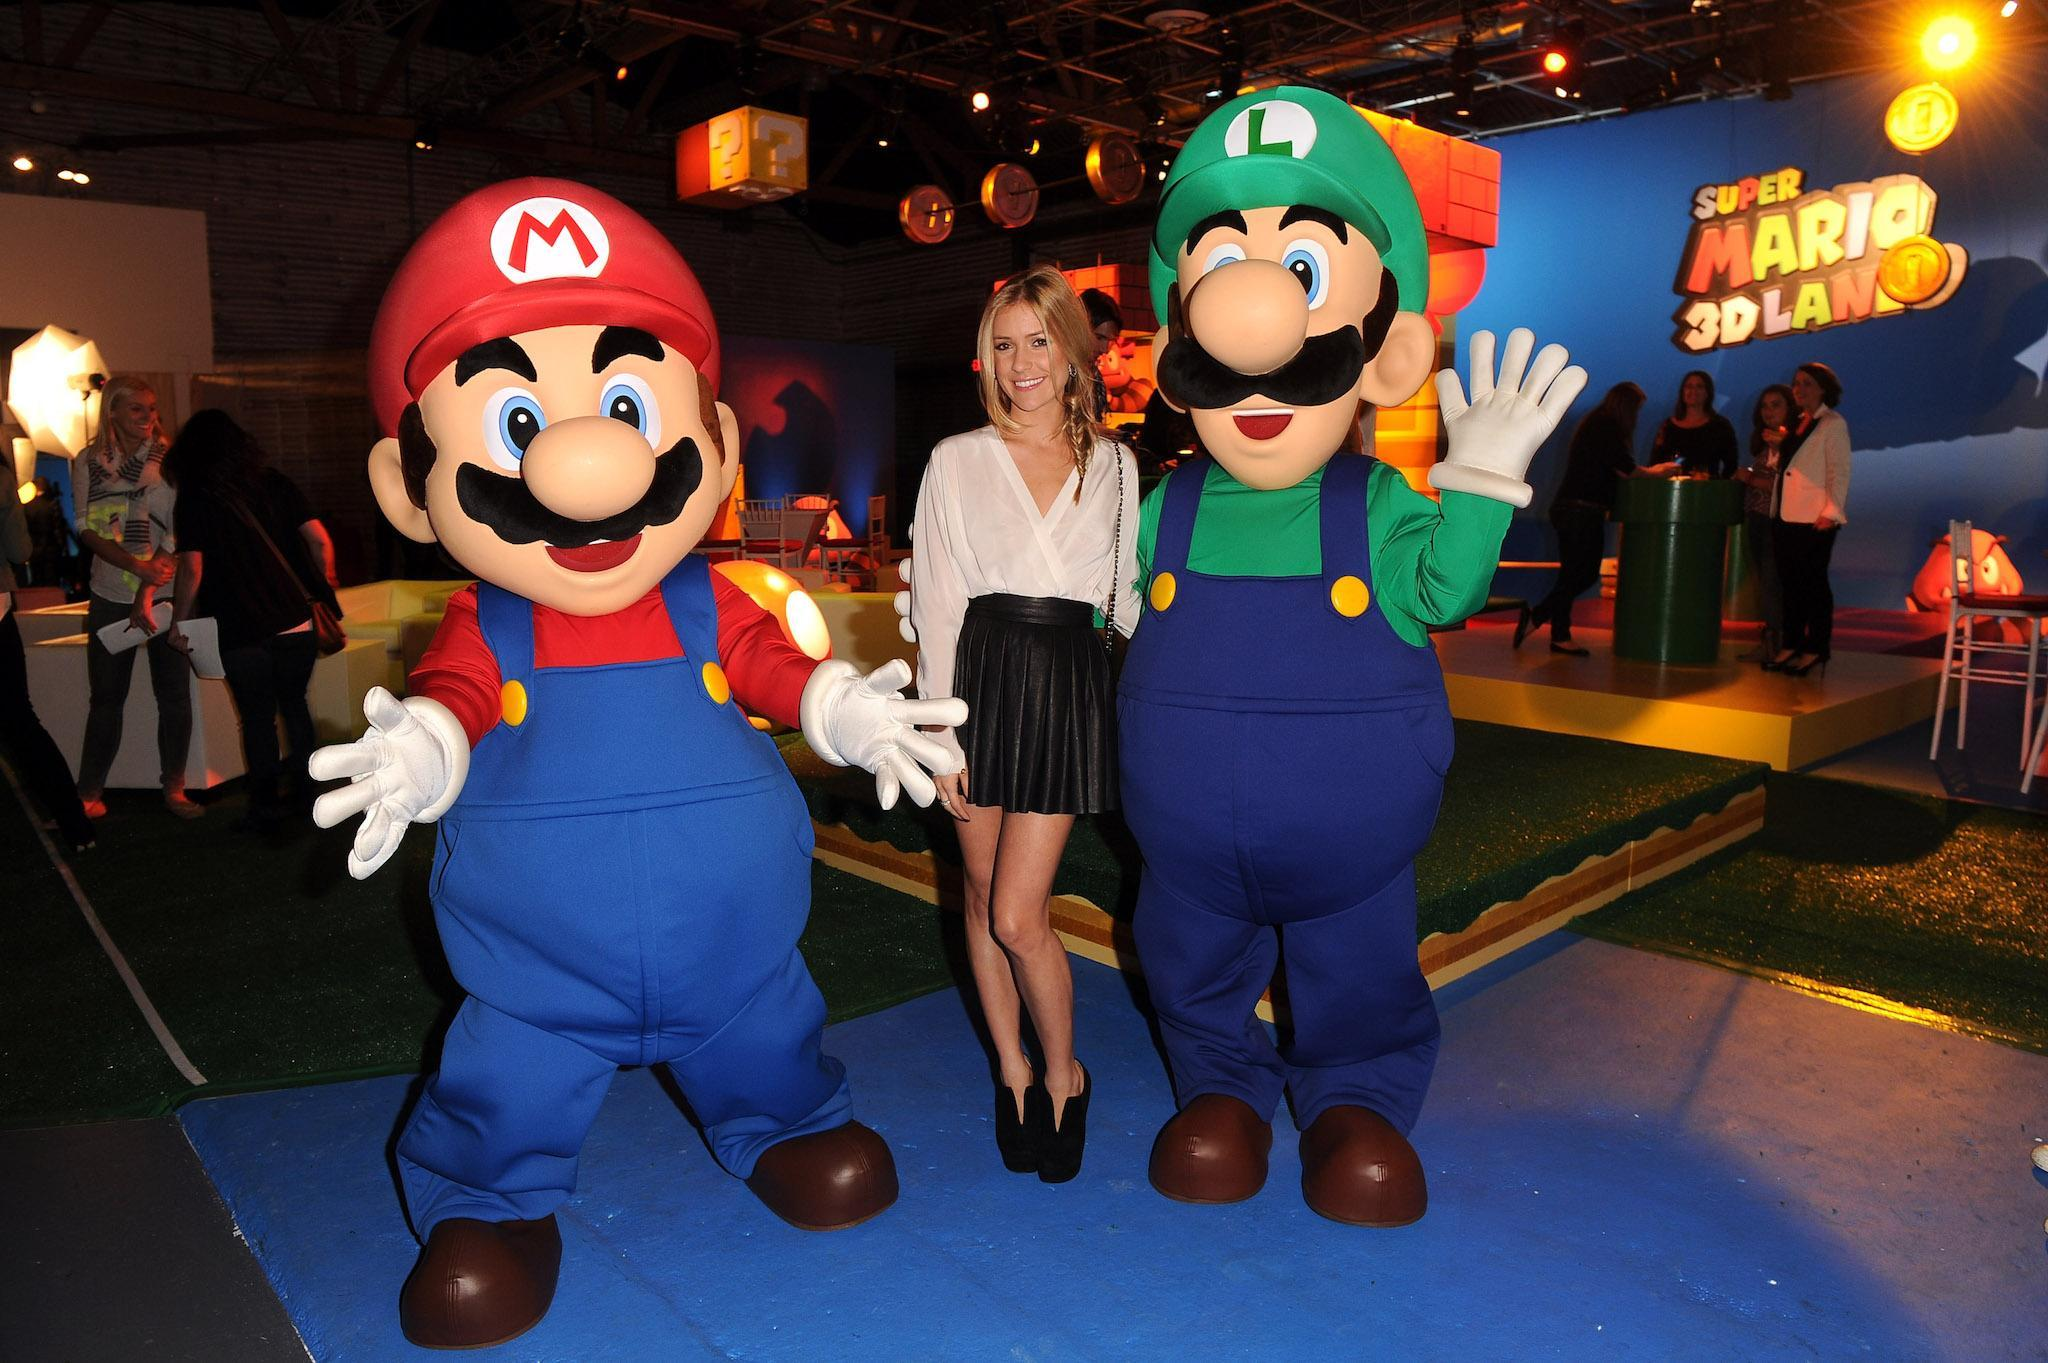 Mario is no longer a plumber, Nintendo officially says | The Independentindependent_brand_ident_LOGOUntitled